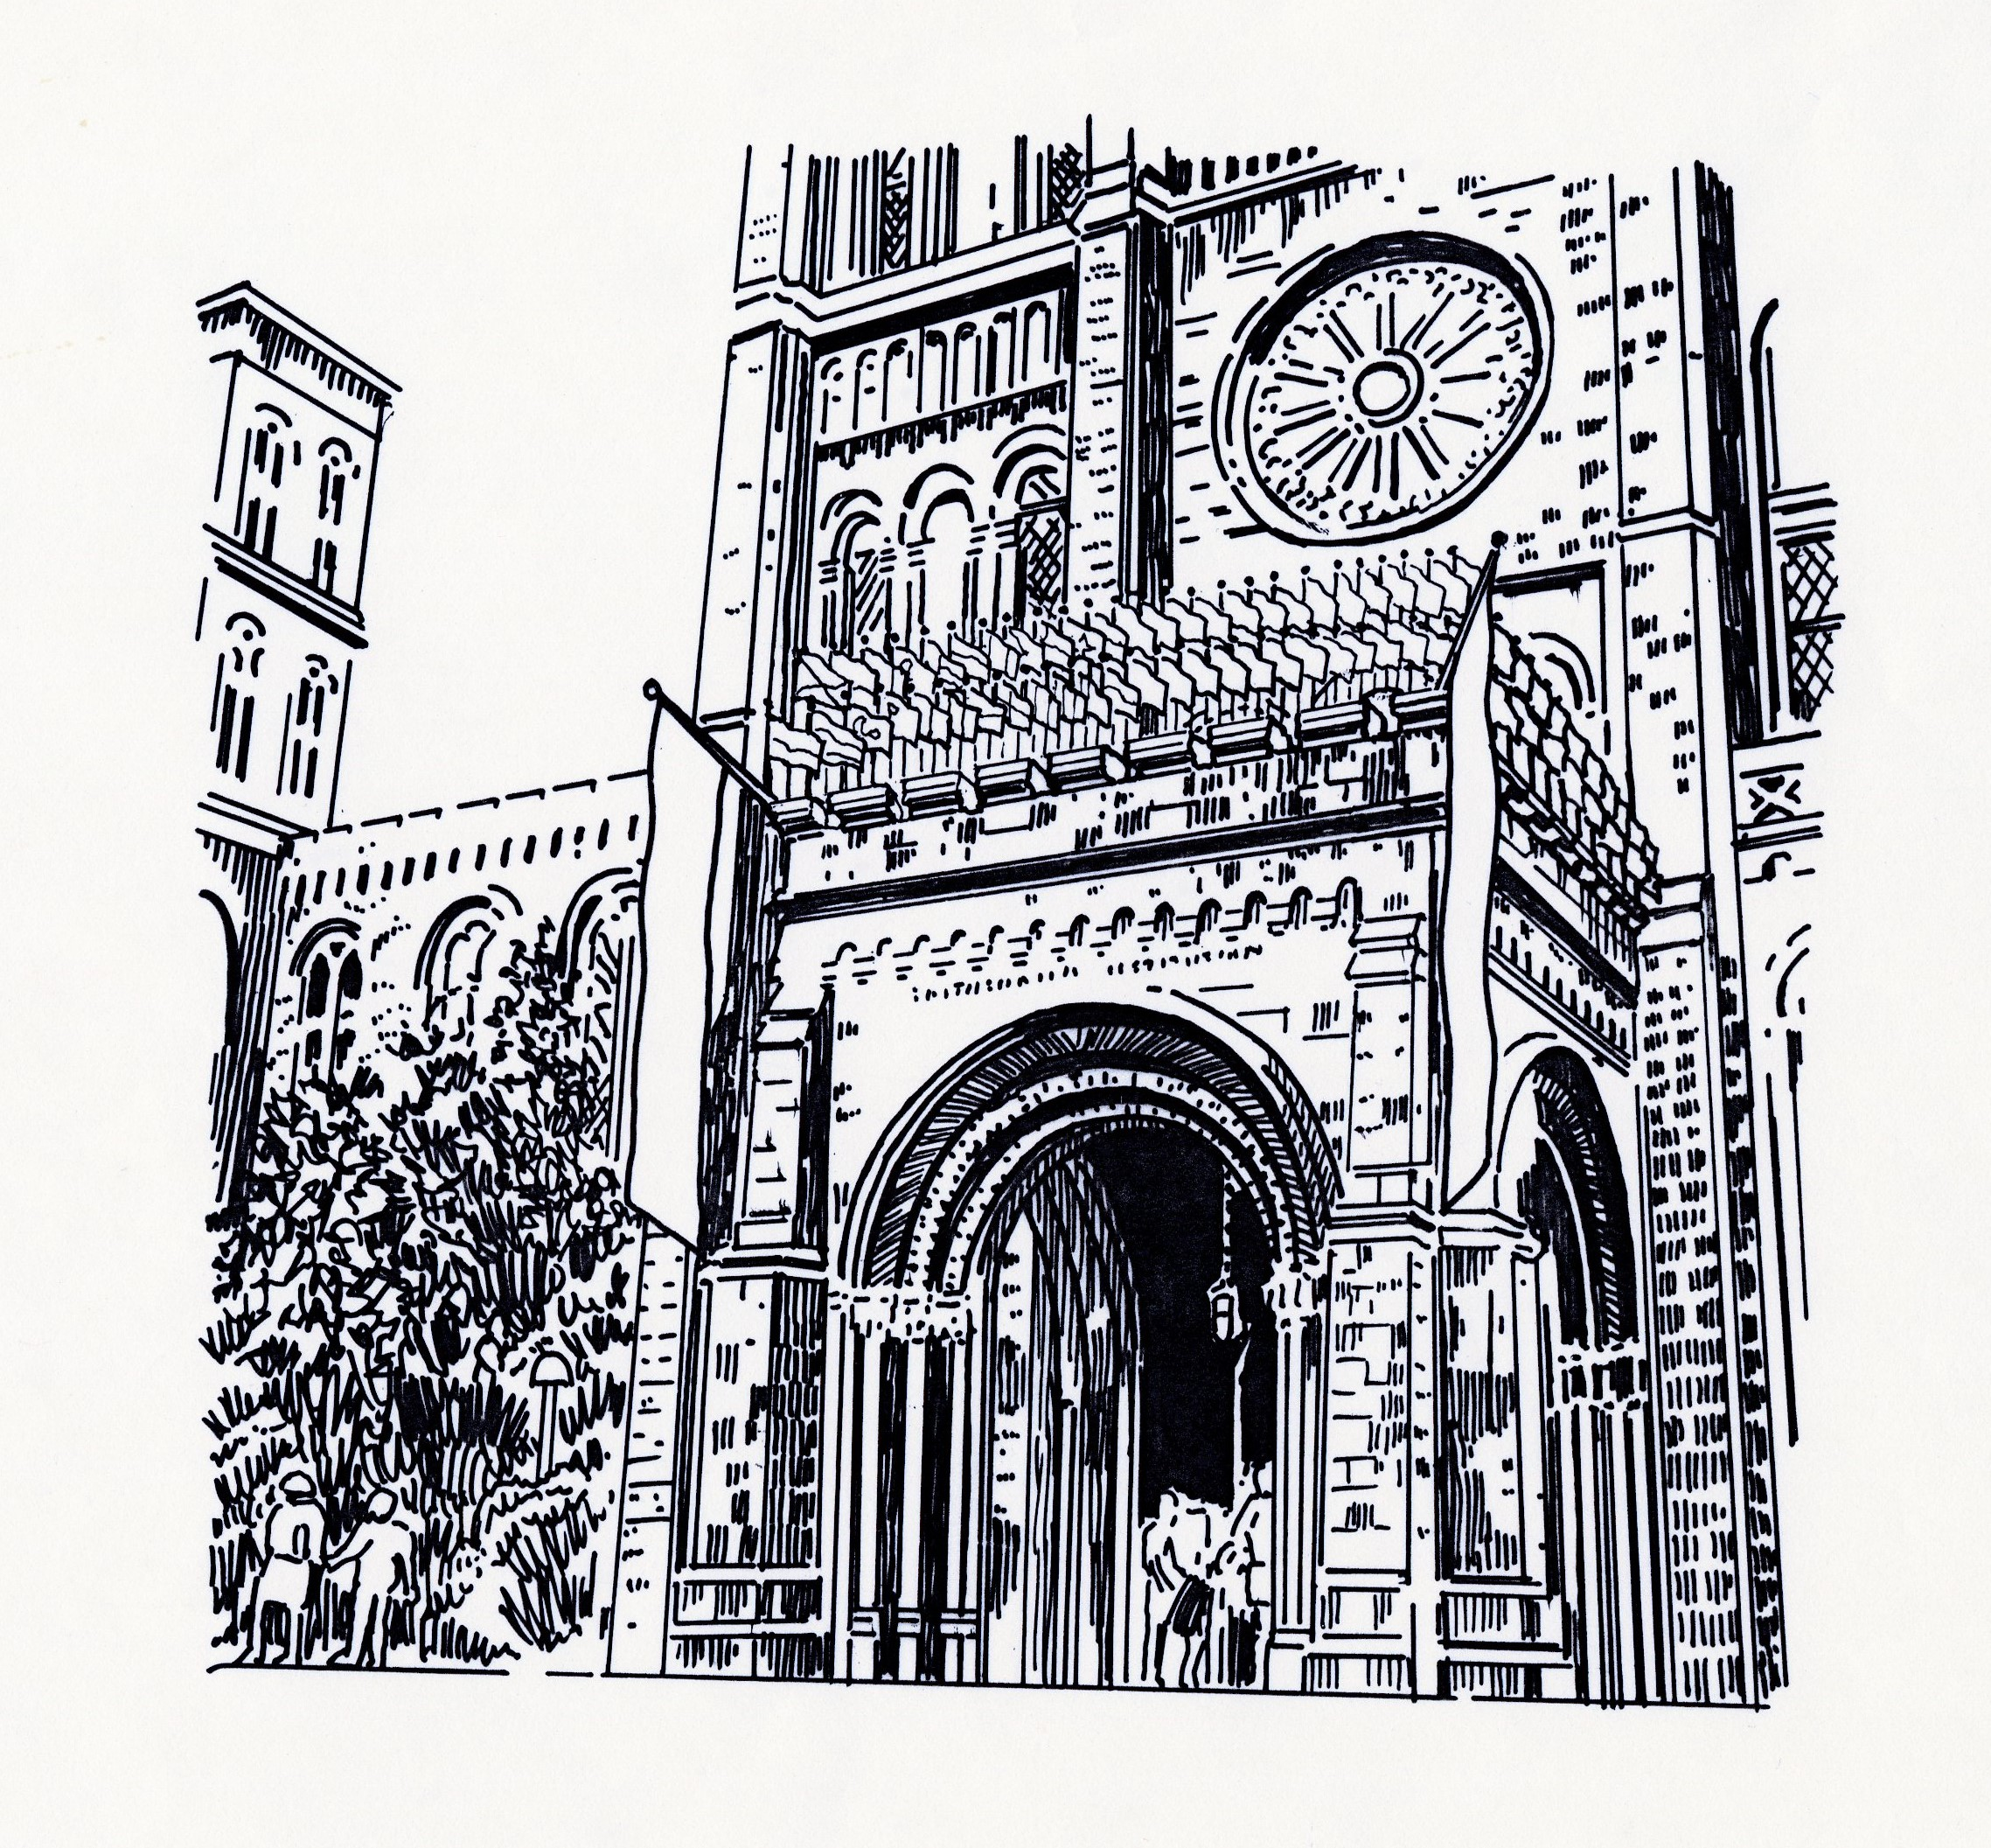 Black and white drawing of flags adorning the National Mall entrance to the Smithsonian Institution